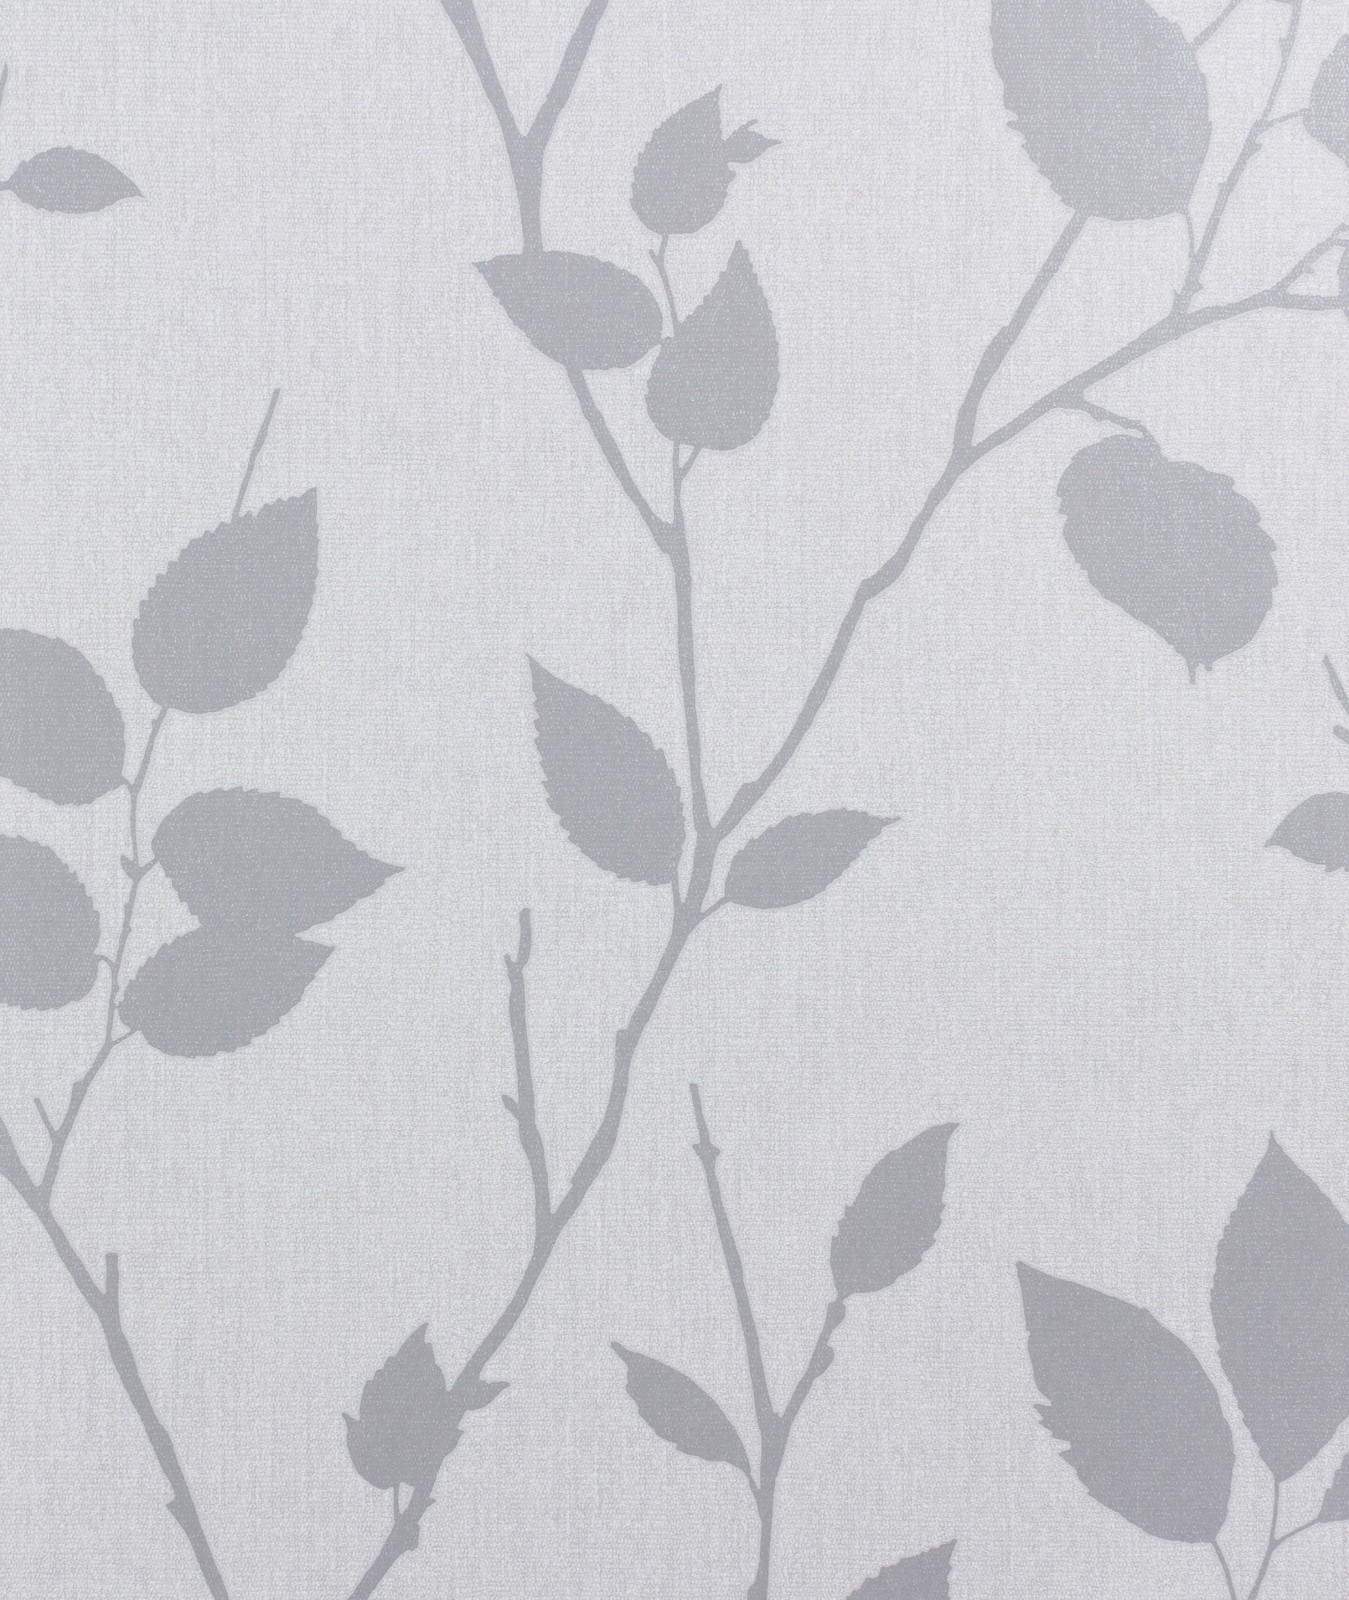 Graham Brown Superfresco Non Woven Wallpaper Element 31 872 31872 Leaves Grey 001